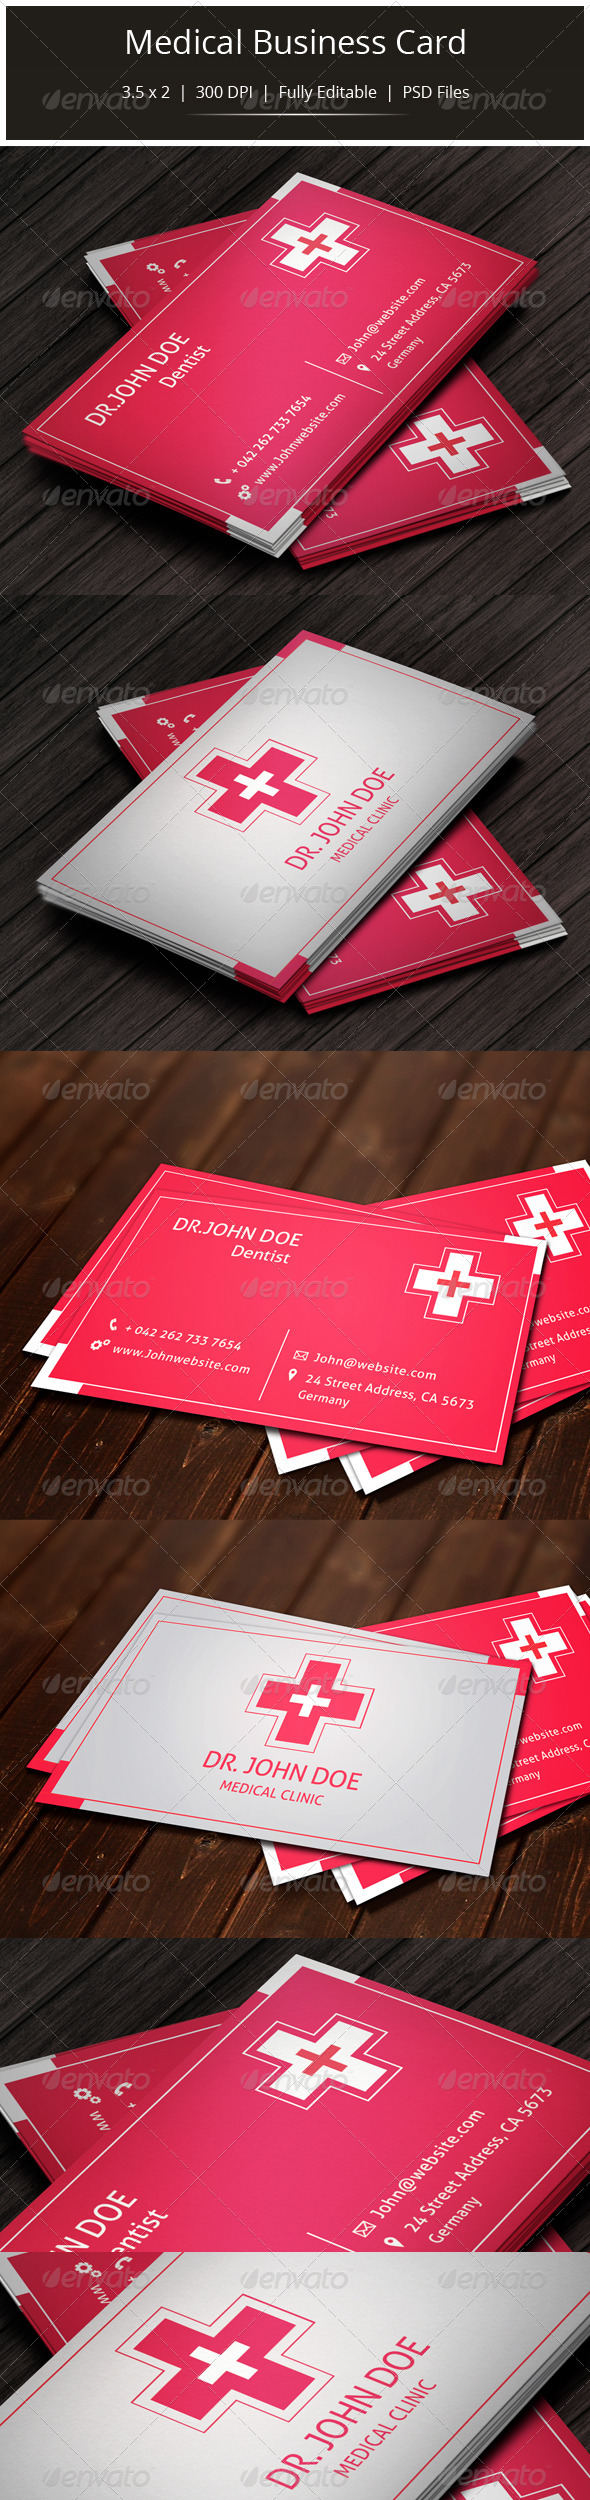 GraphicRiver Medical Business Card 5625954